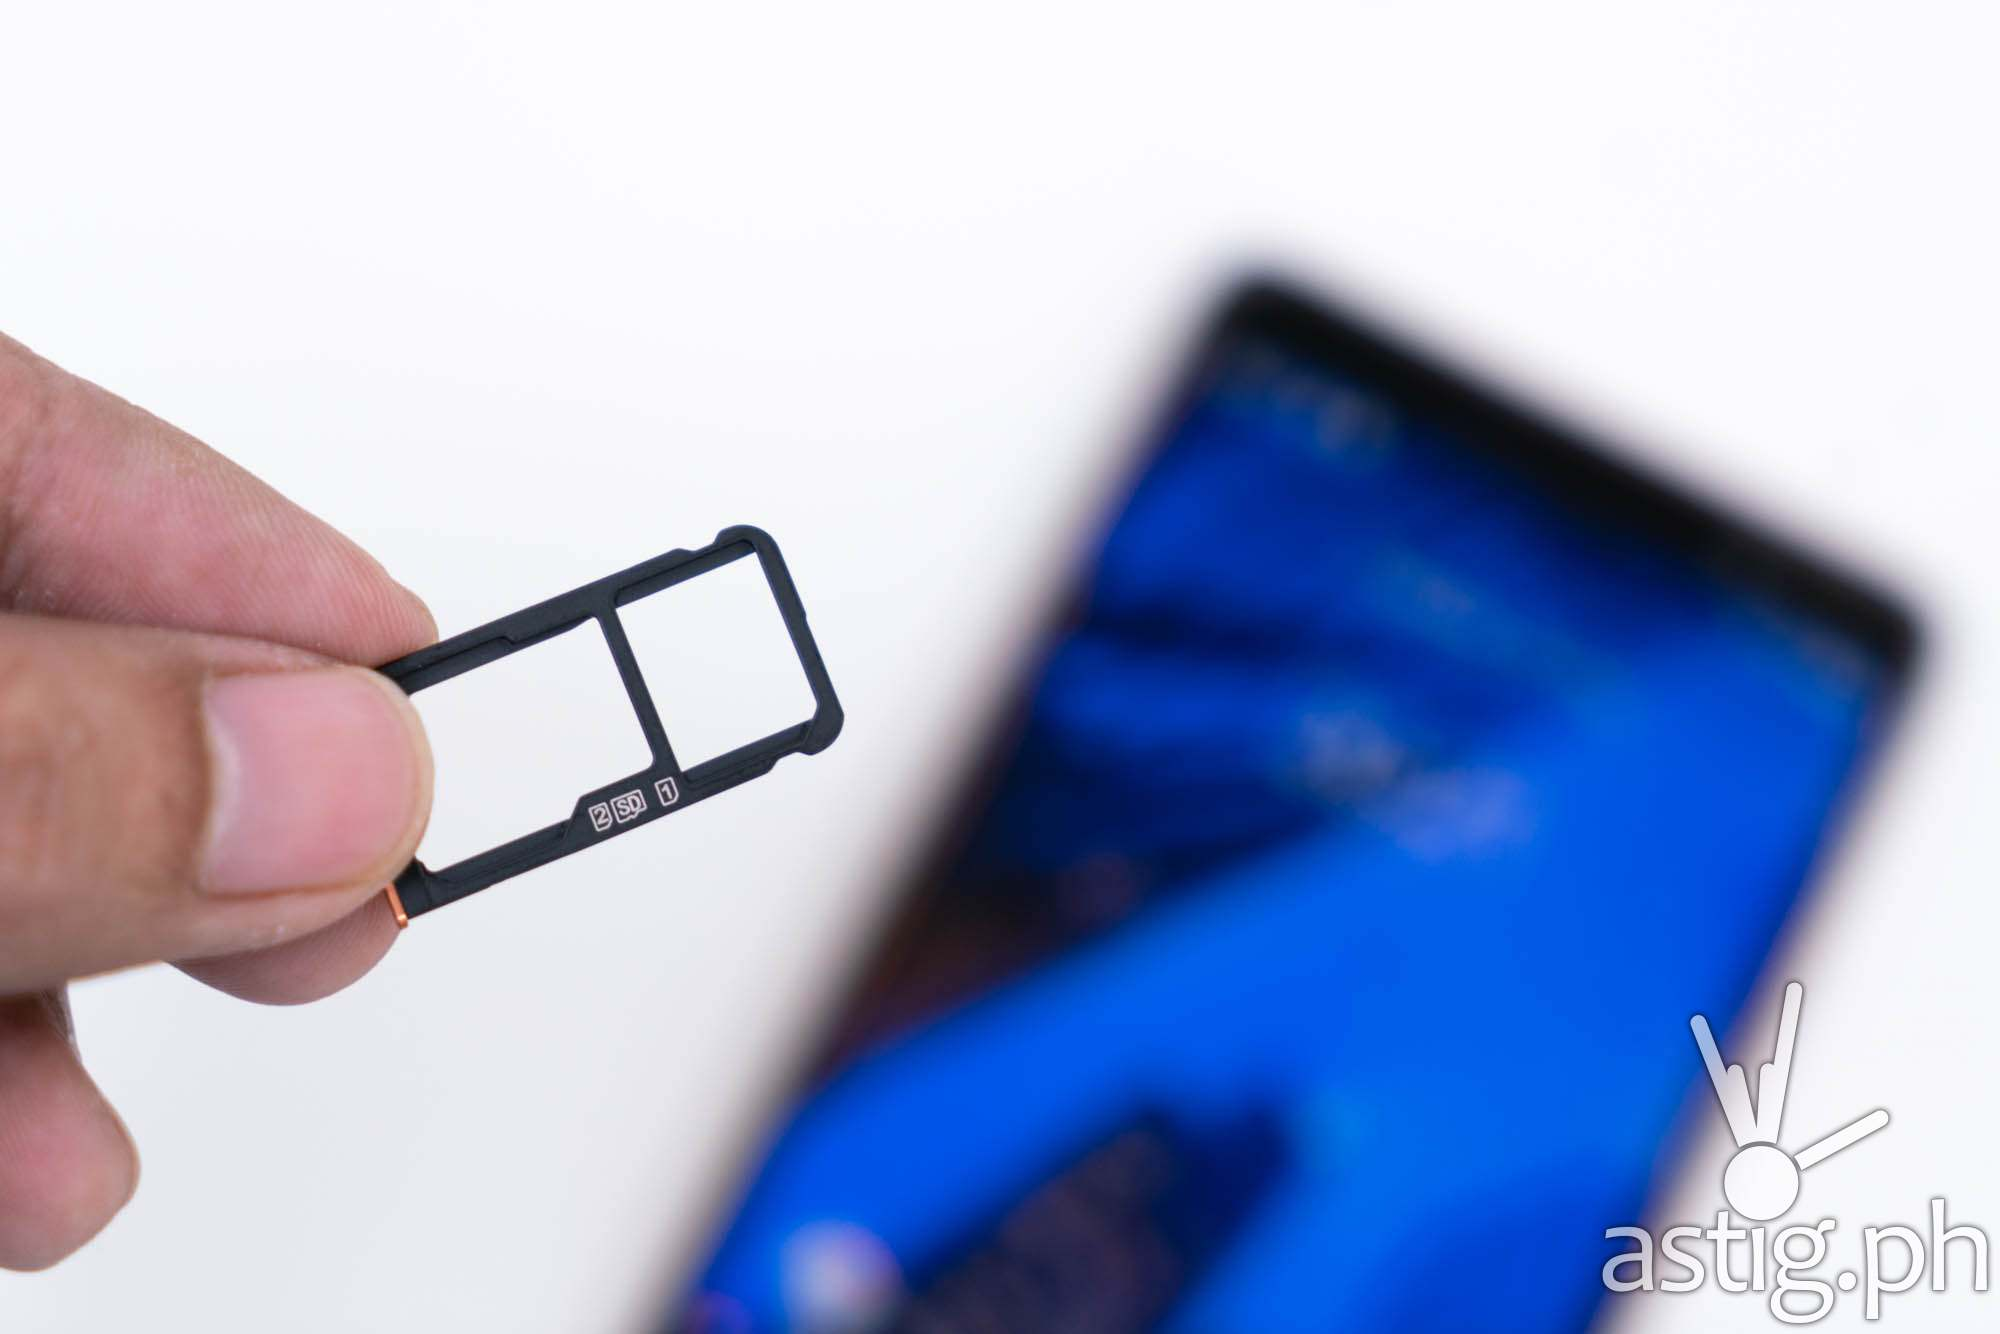 Hybrid SIM & micro SD card slot - Nokia 7 Plus (Philippines)